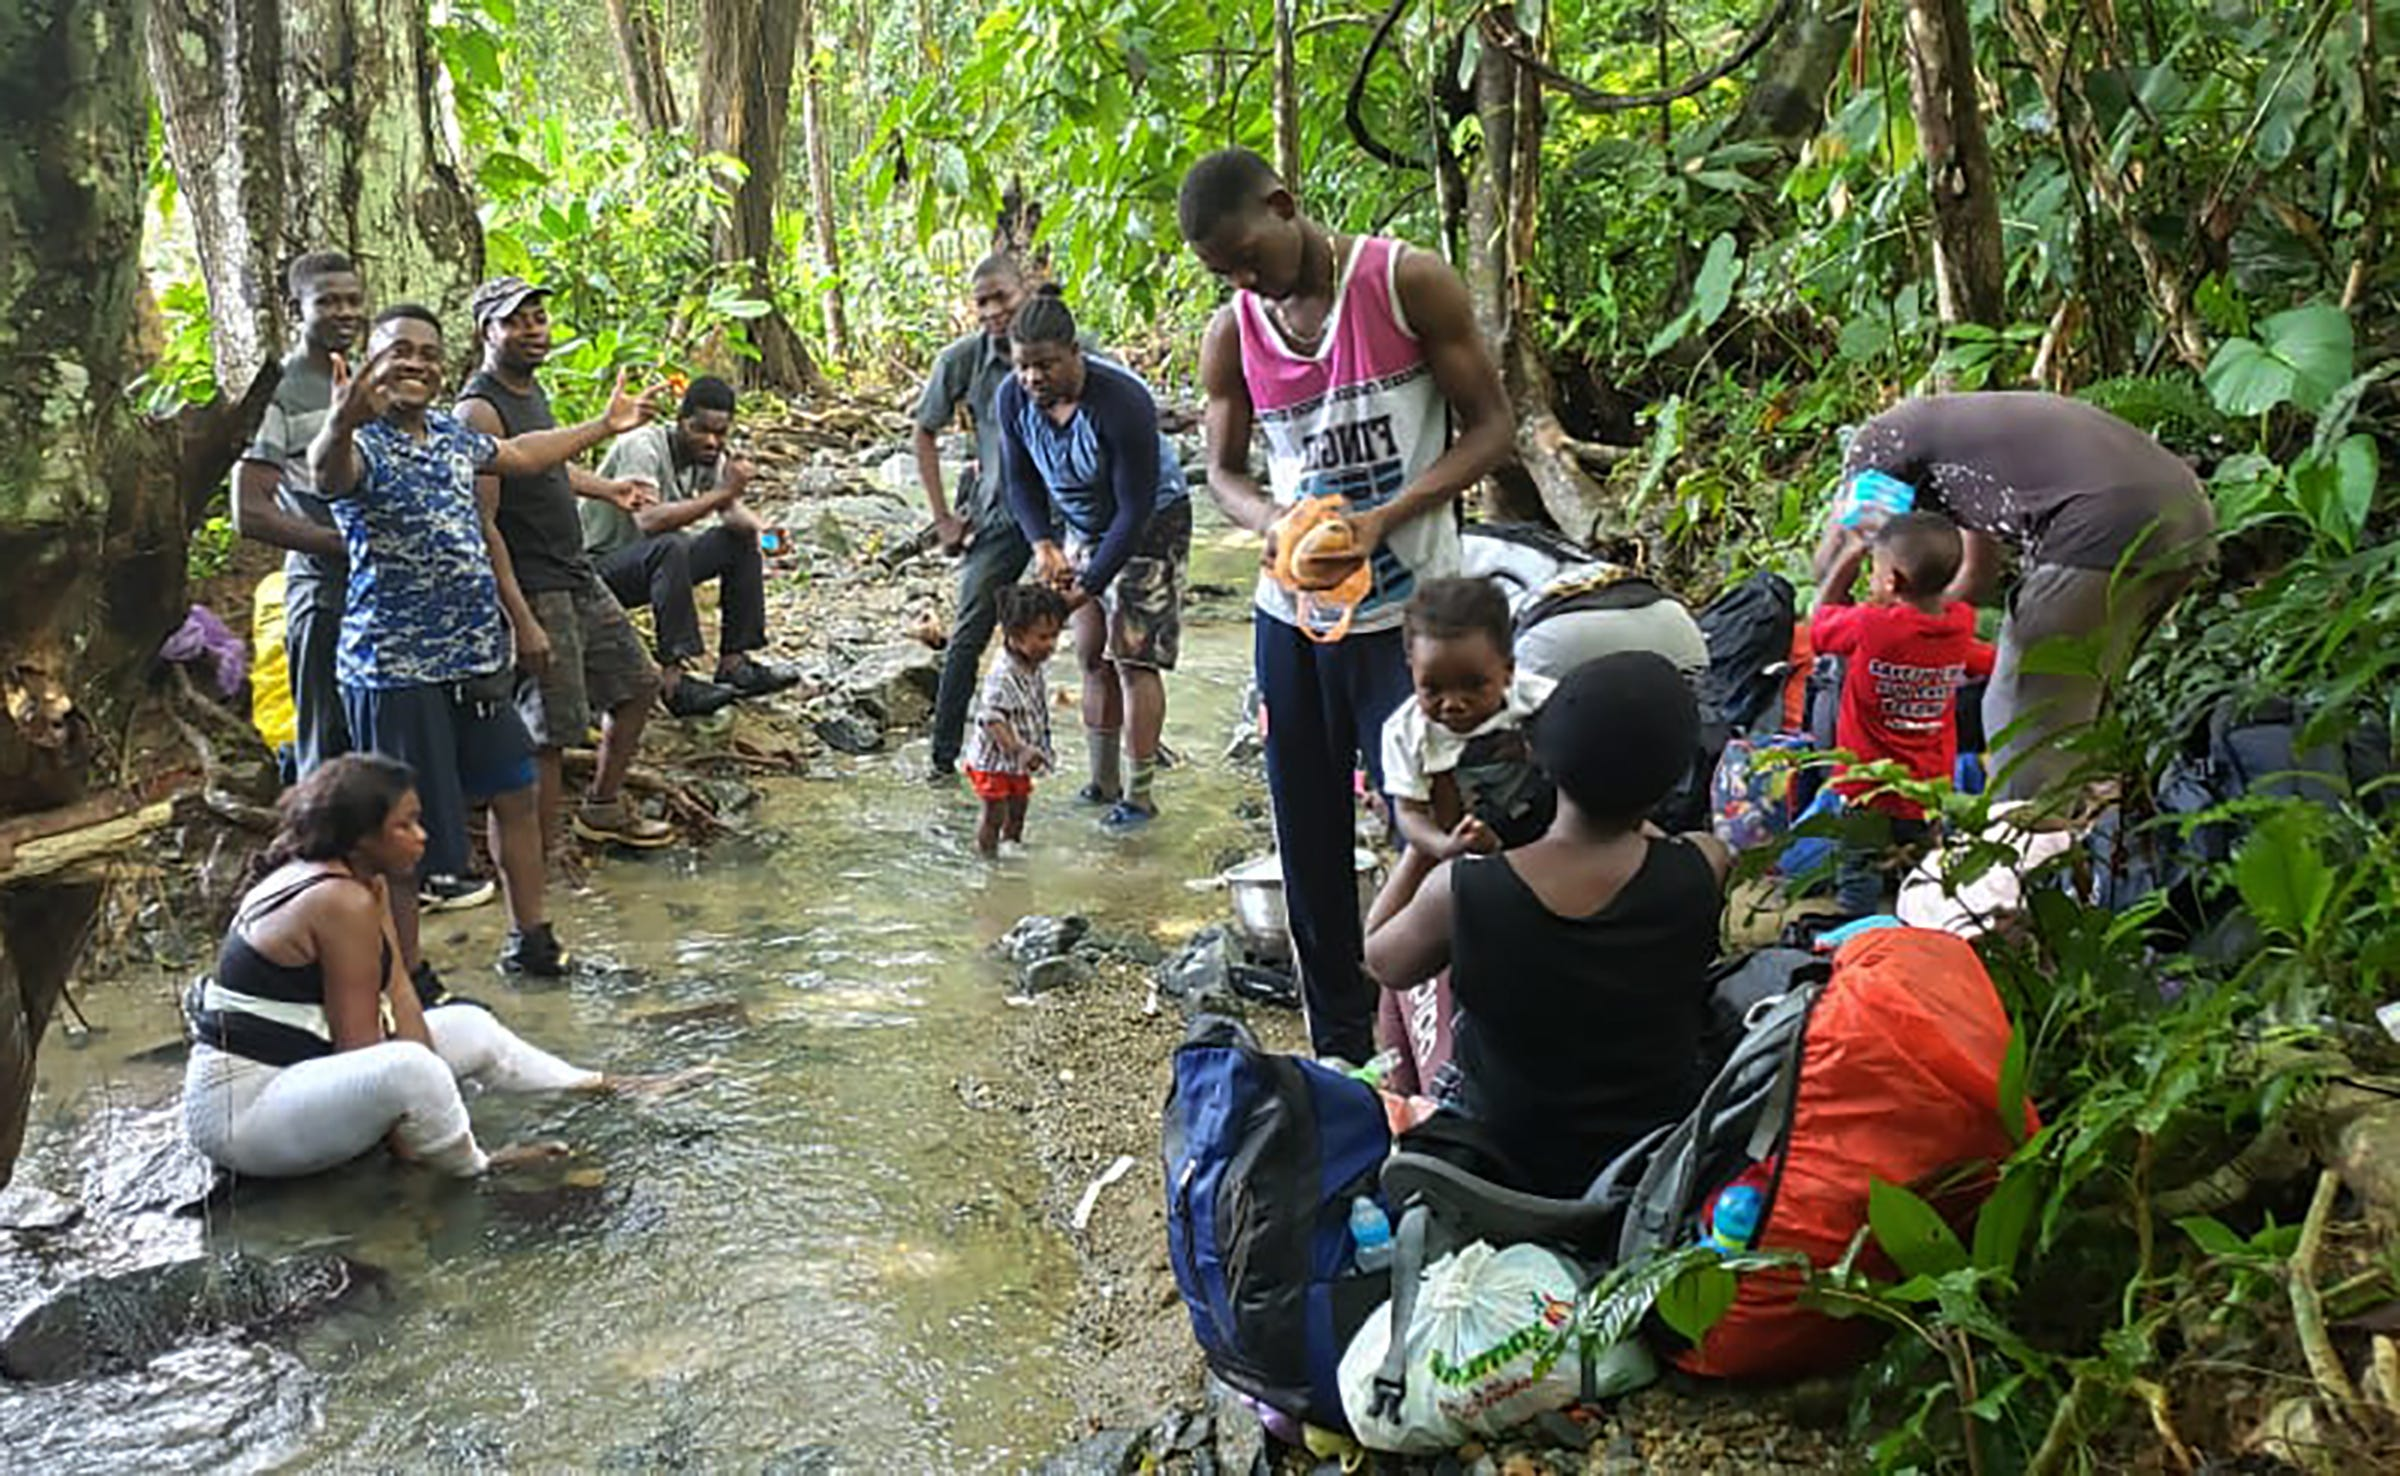 Williamson Simon, at center, holds his son as he travels north through the Darien Gap at the border between Panama and Colombia, in December 2019.